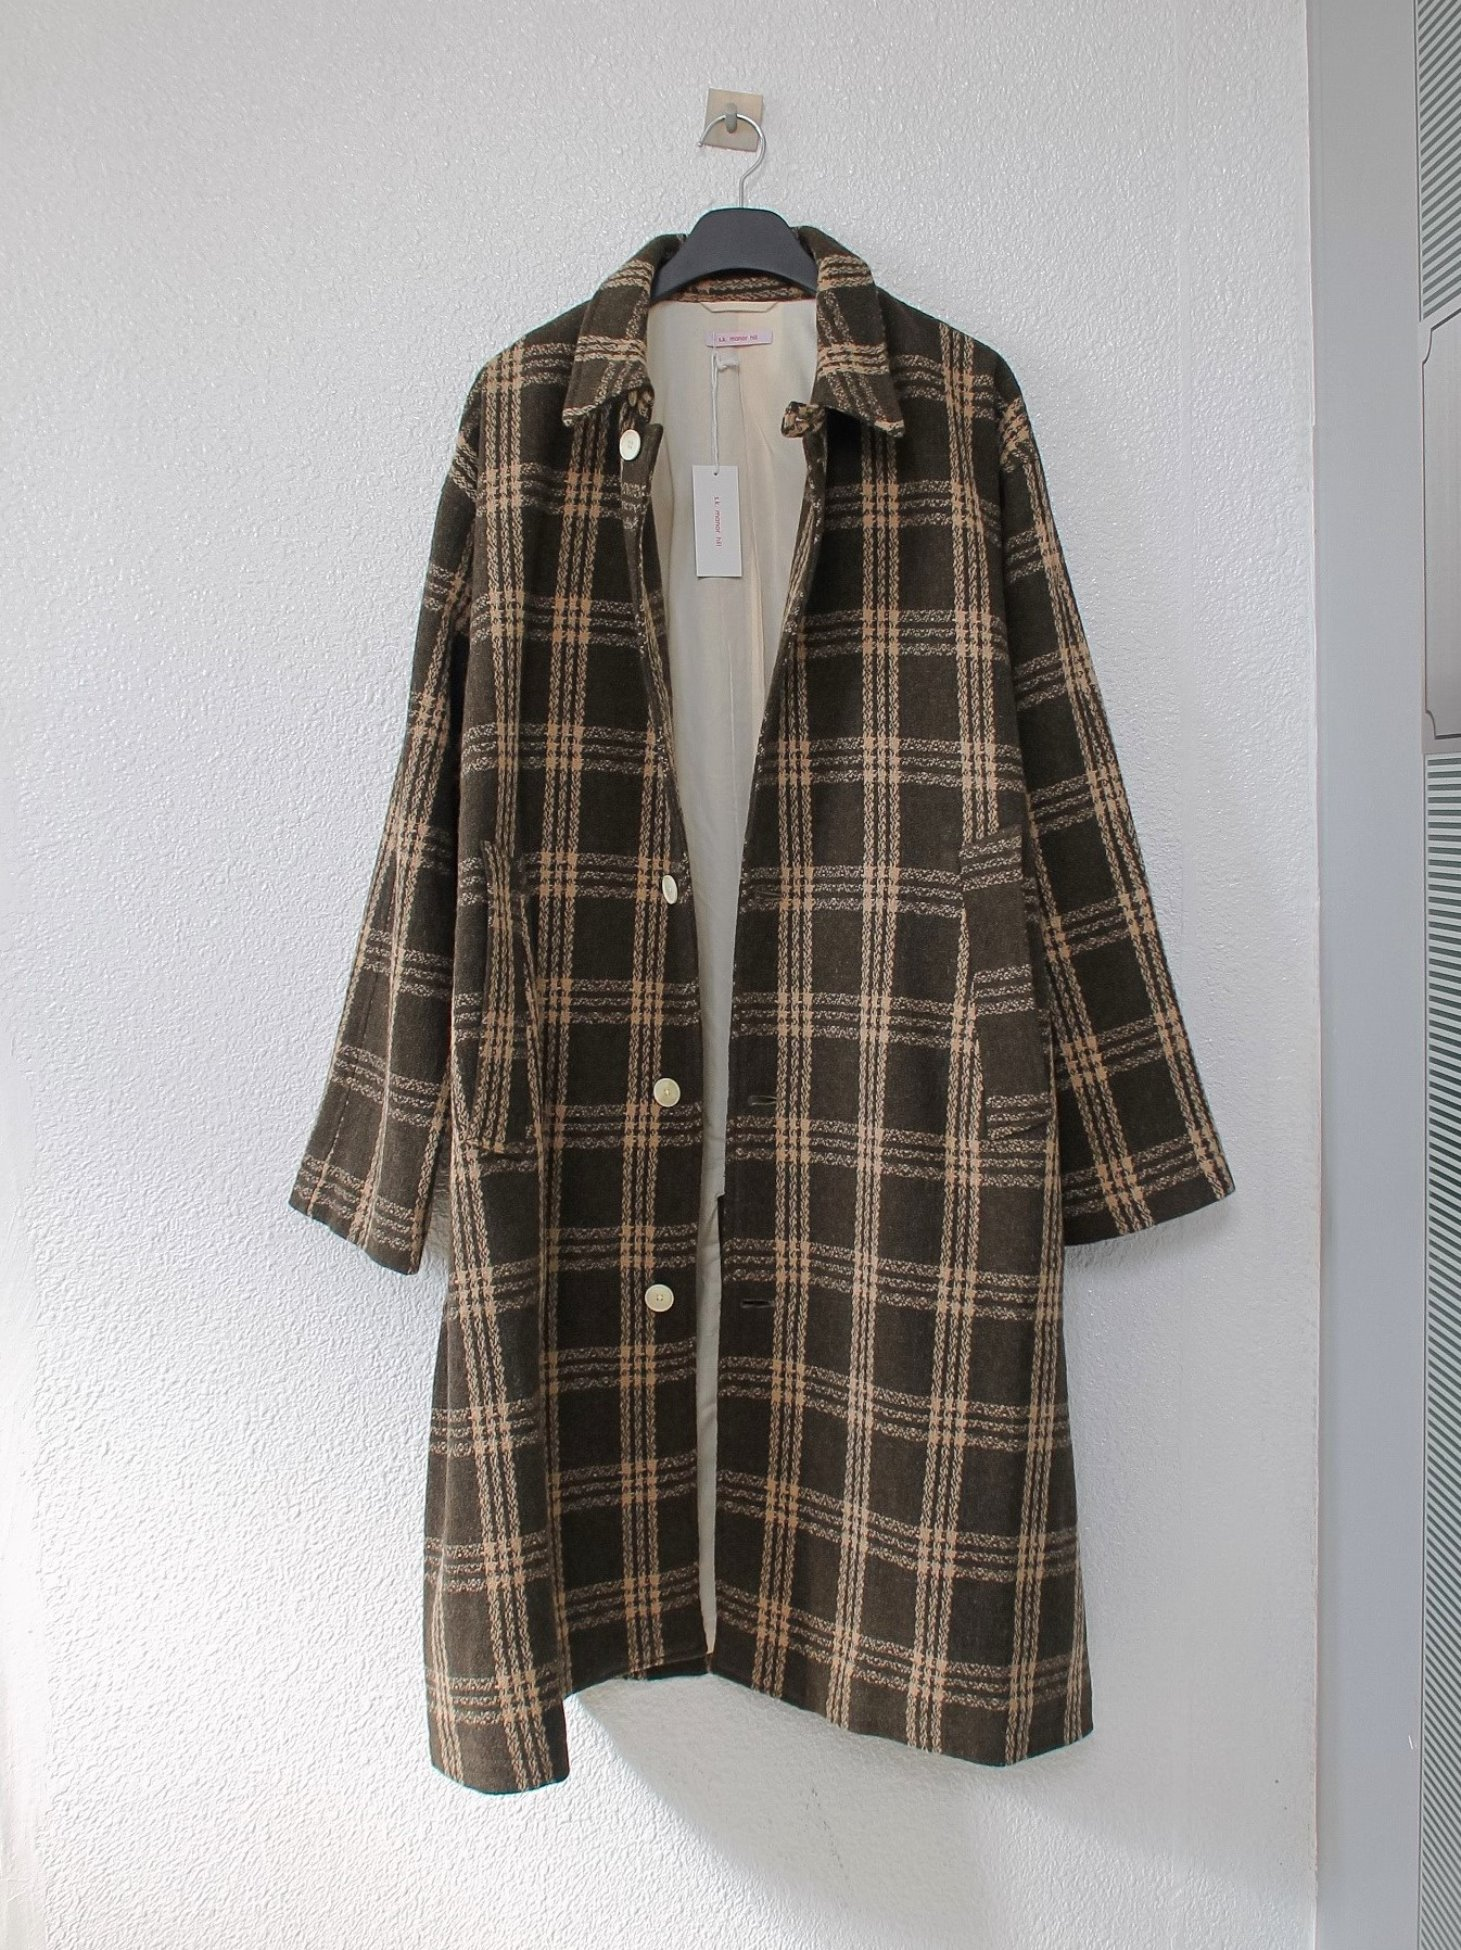 [s.k. manor hill] Shelby Trench Coat - Brown Plaid